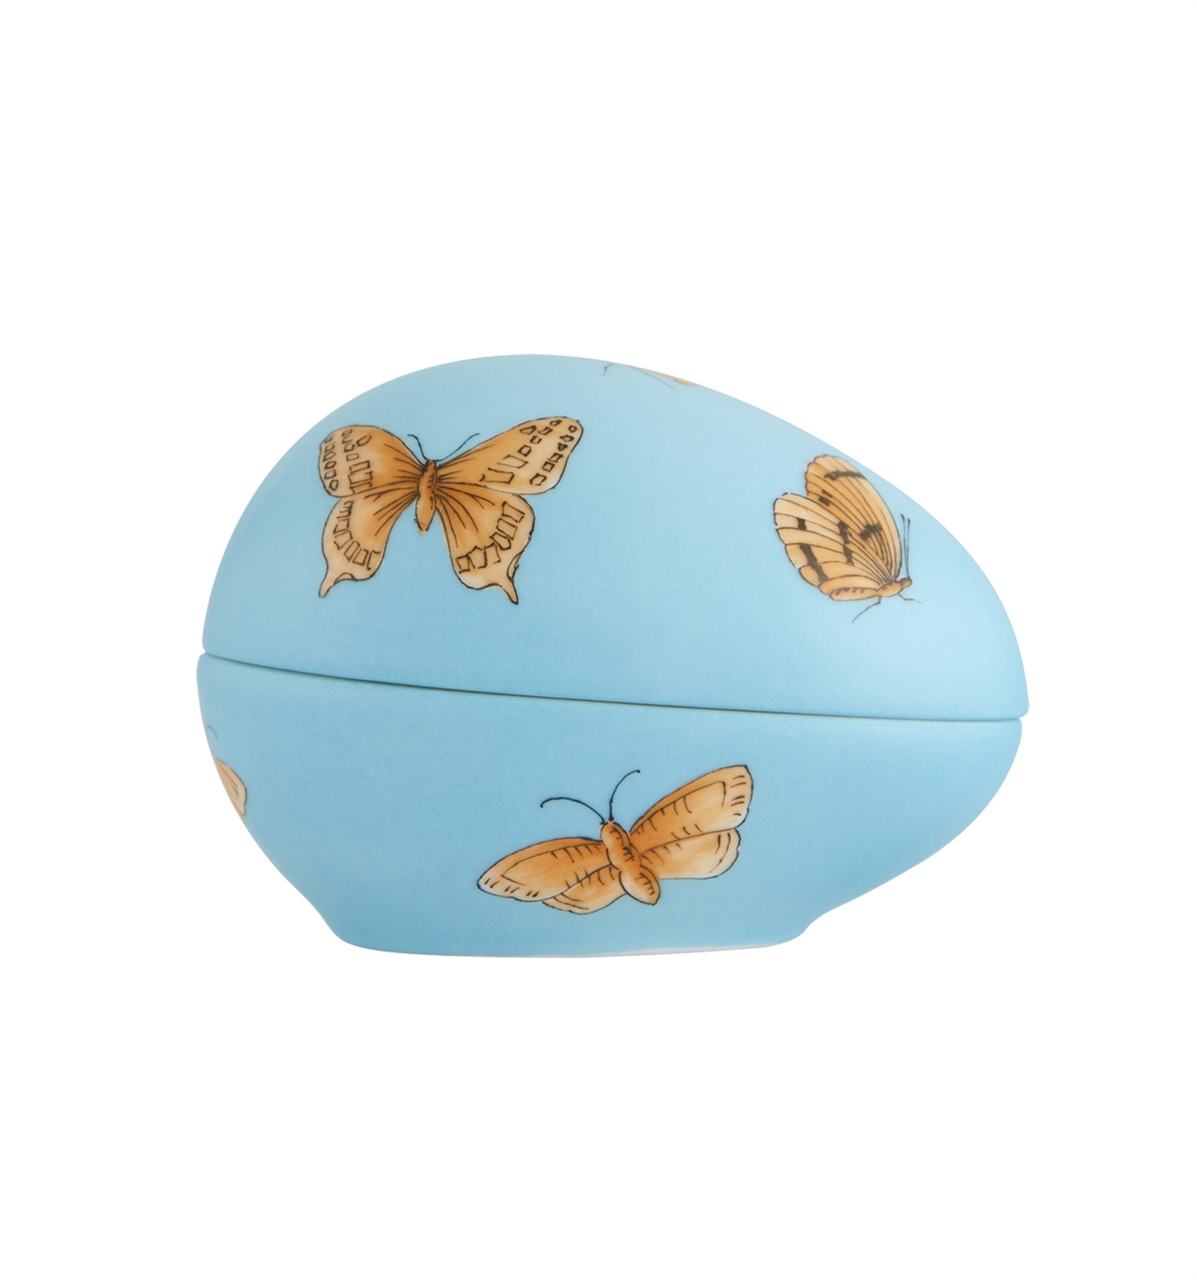 Vista Alegre Egg Box €105.00